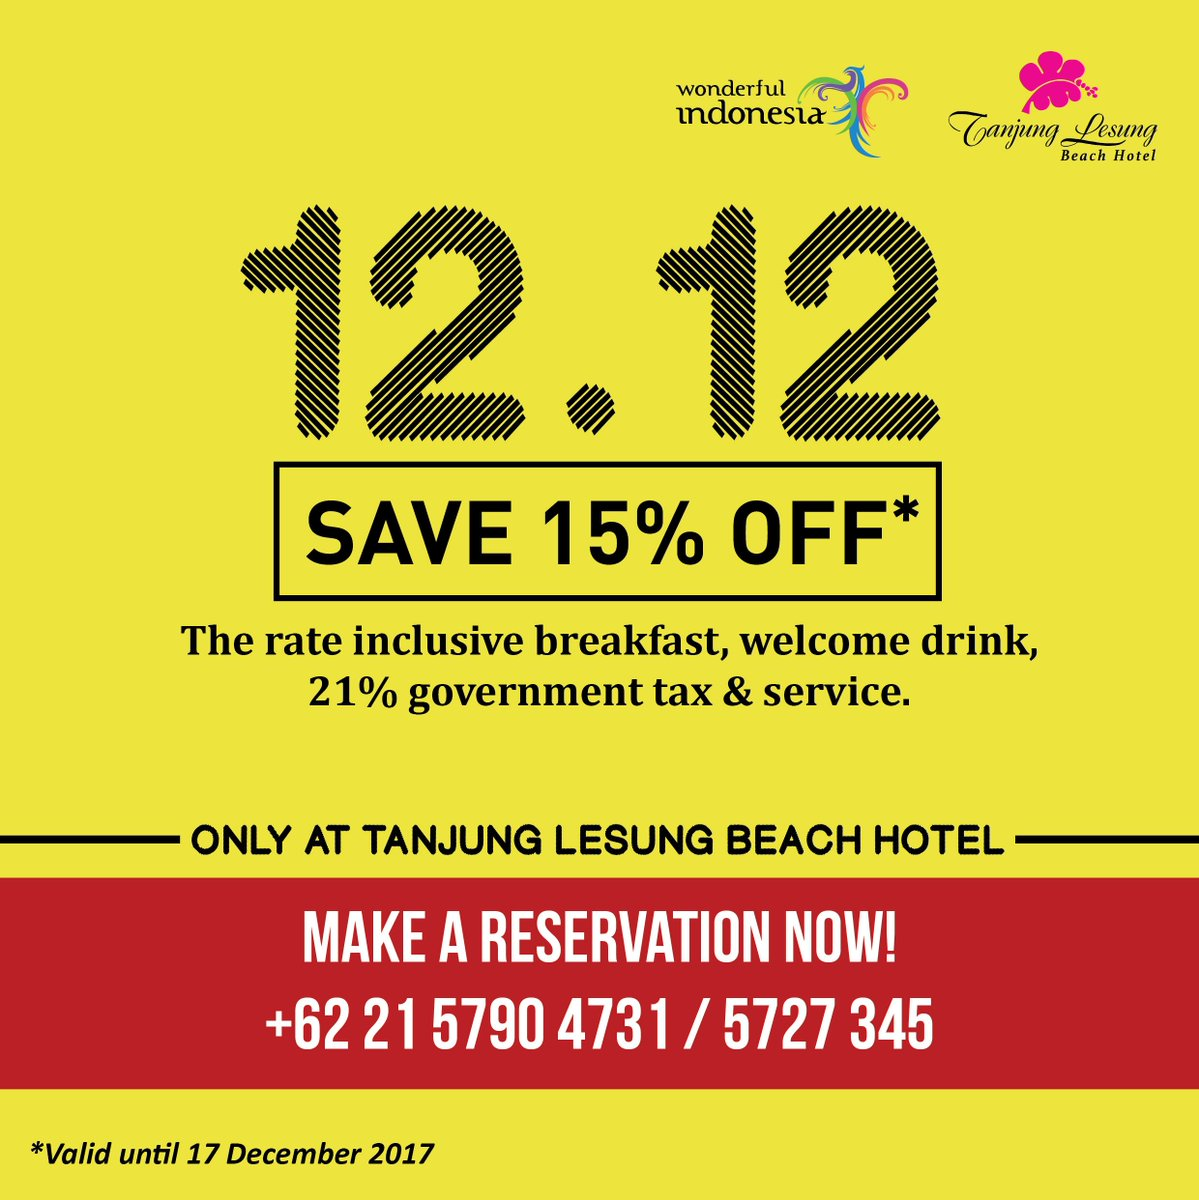 Tanjung Lesung On Twitter Are You Ready To Save 15 Off Enjoy Our 12 12 Promo Book Now 6221 5790 4731 5727 345 Tanjunglesungbeachhotel Kektanjunglesung Tanjunglesung Https T Co Mkjj9kkgvb